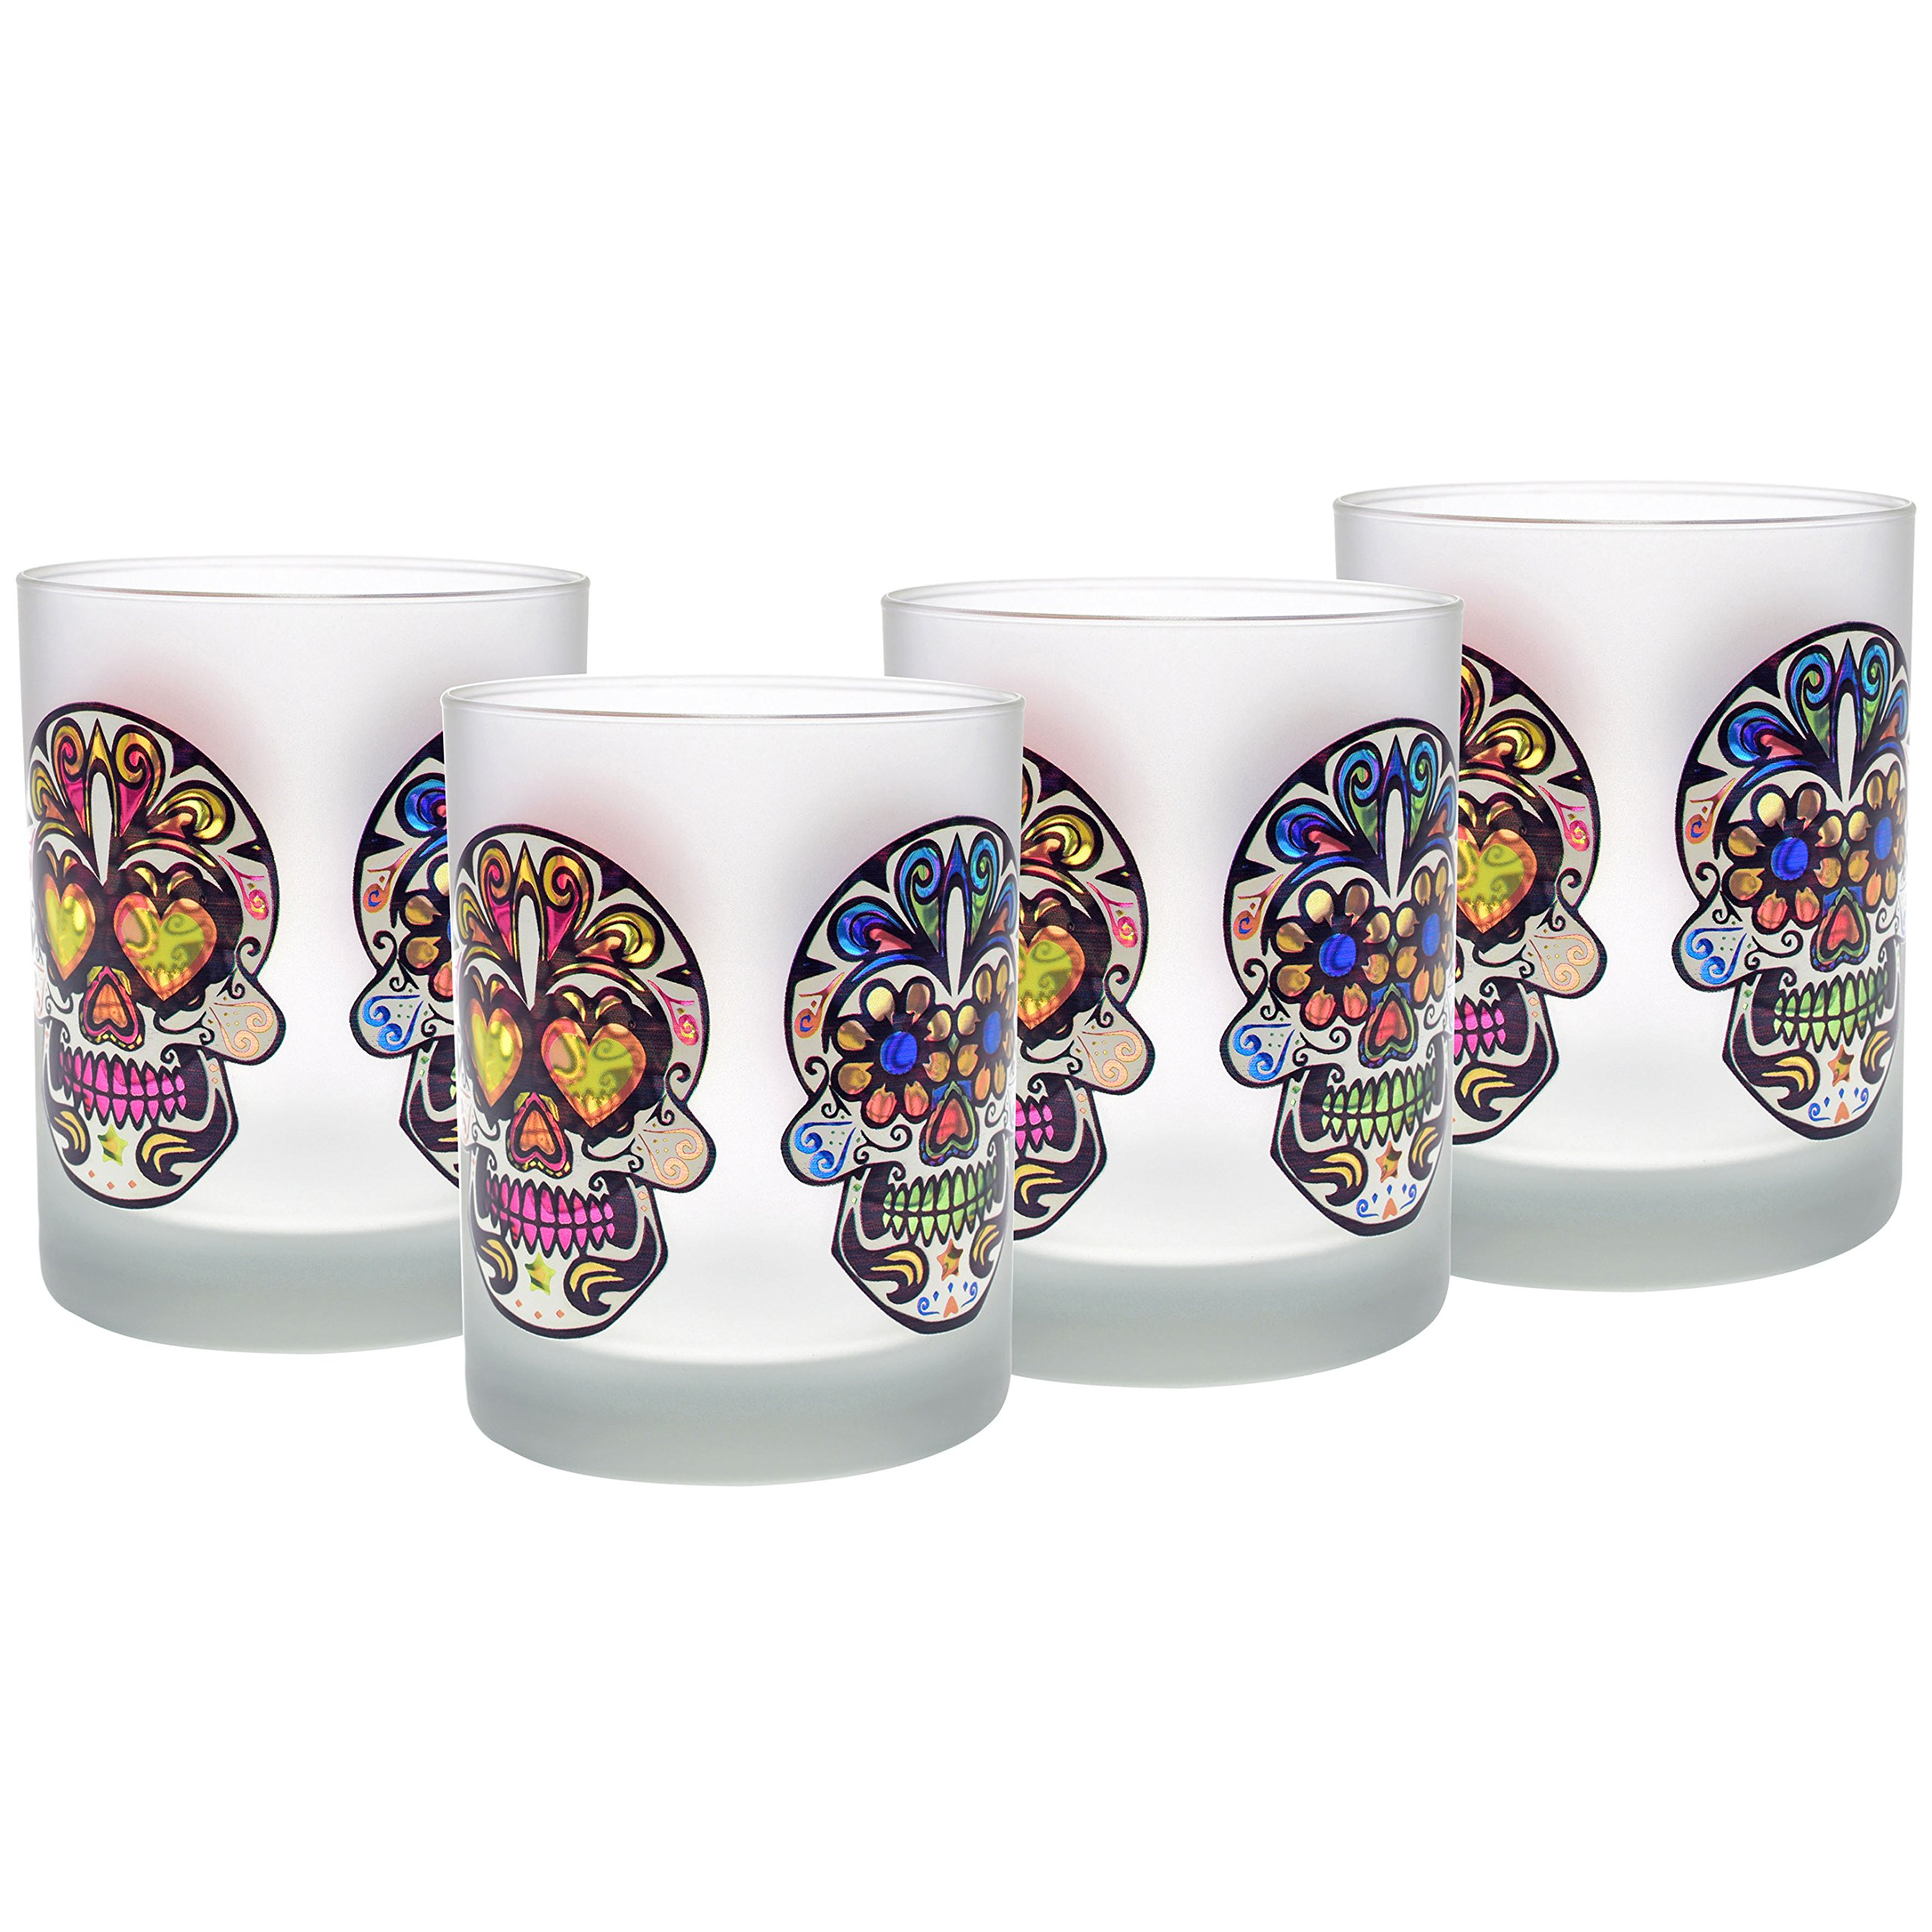 Buy Decorated Sugar Skull Glasses Now!